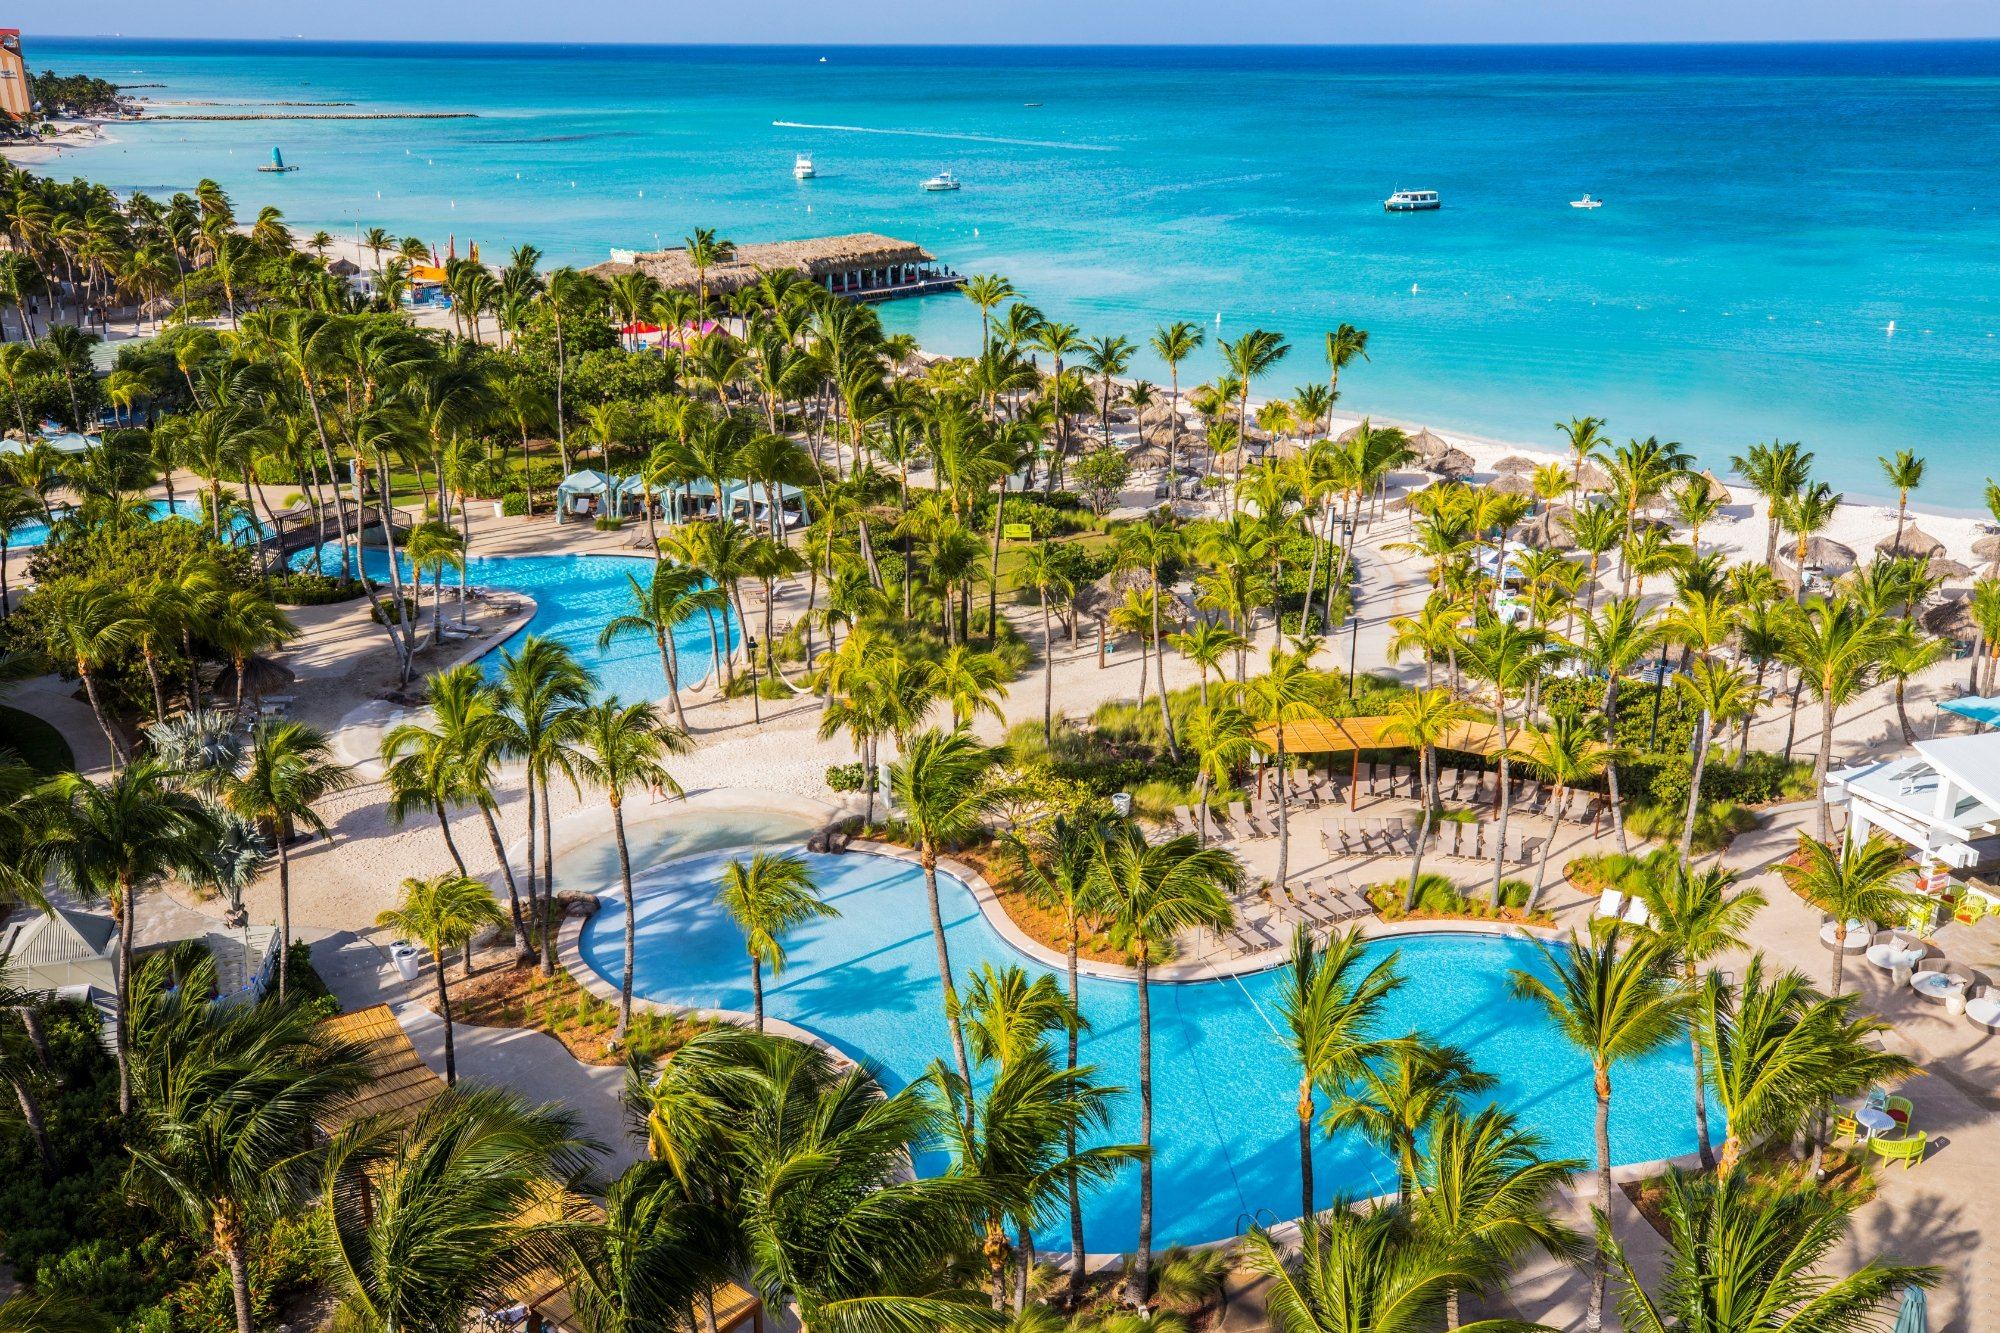 hilton aruba caribbean resort & casino - updated 2017 prices